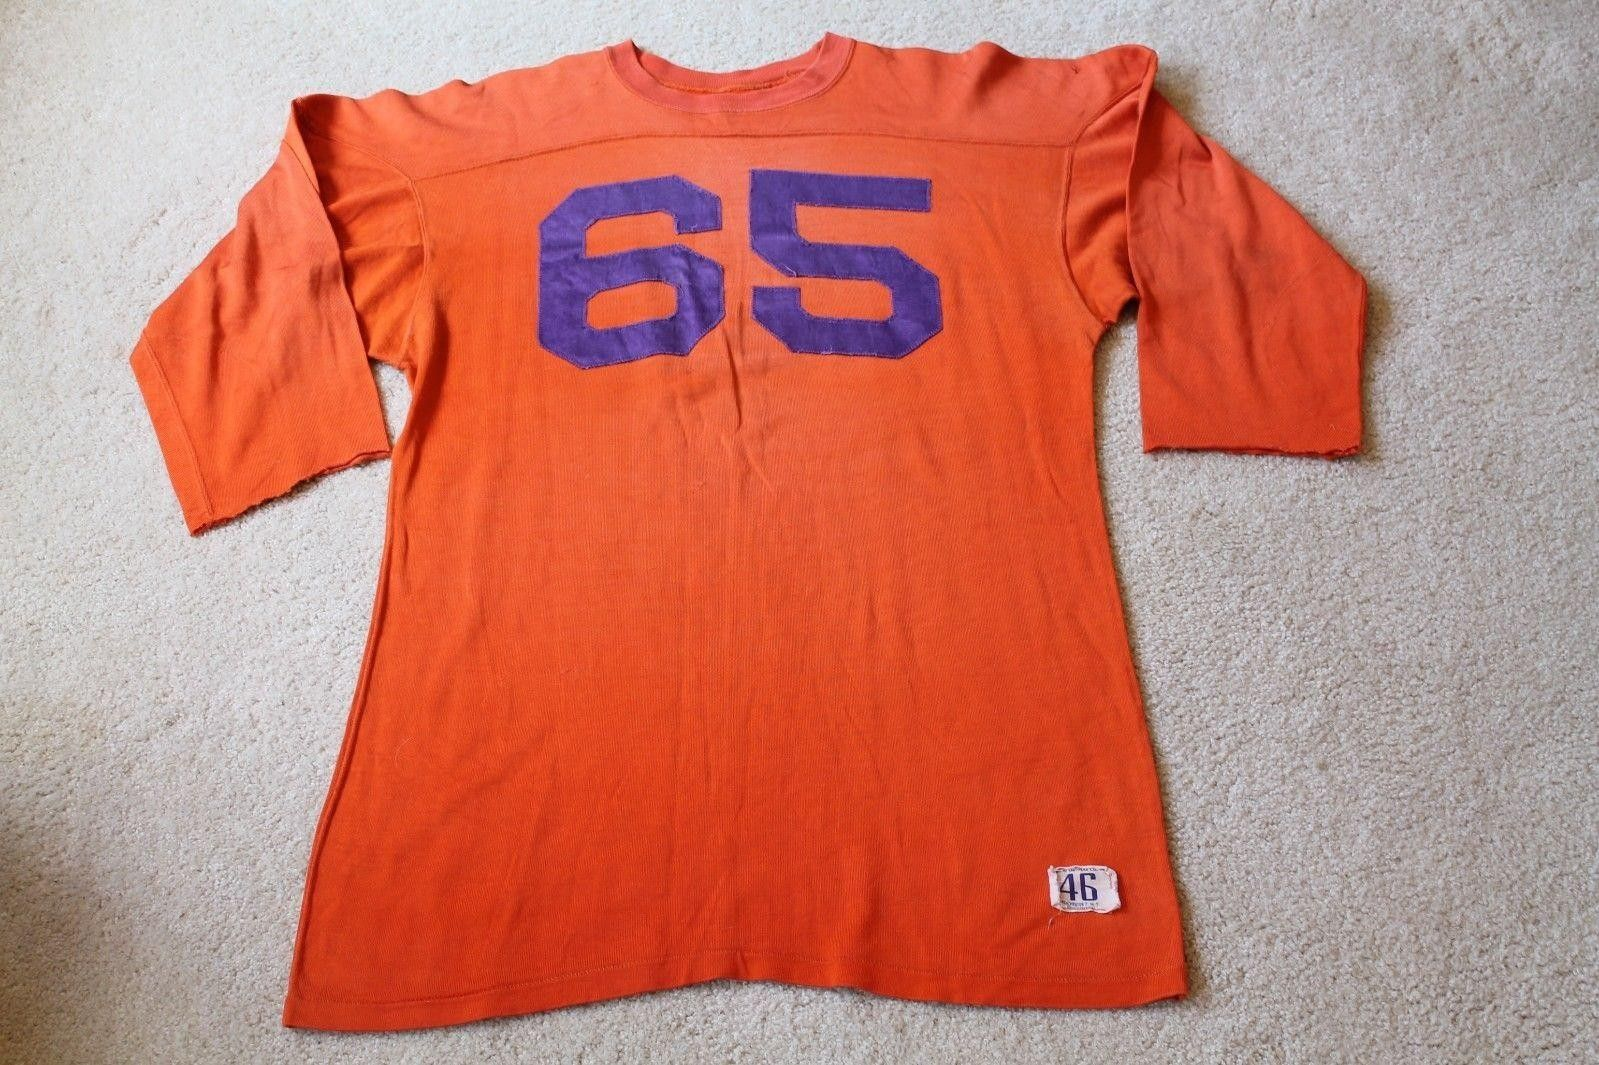 9ca967a67cf Vintage 1940's-50s Game Used Durene Orange Football Jersey  65 Clemson  Tigers